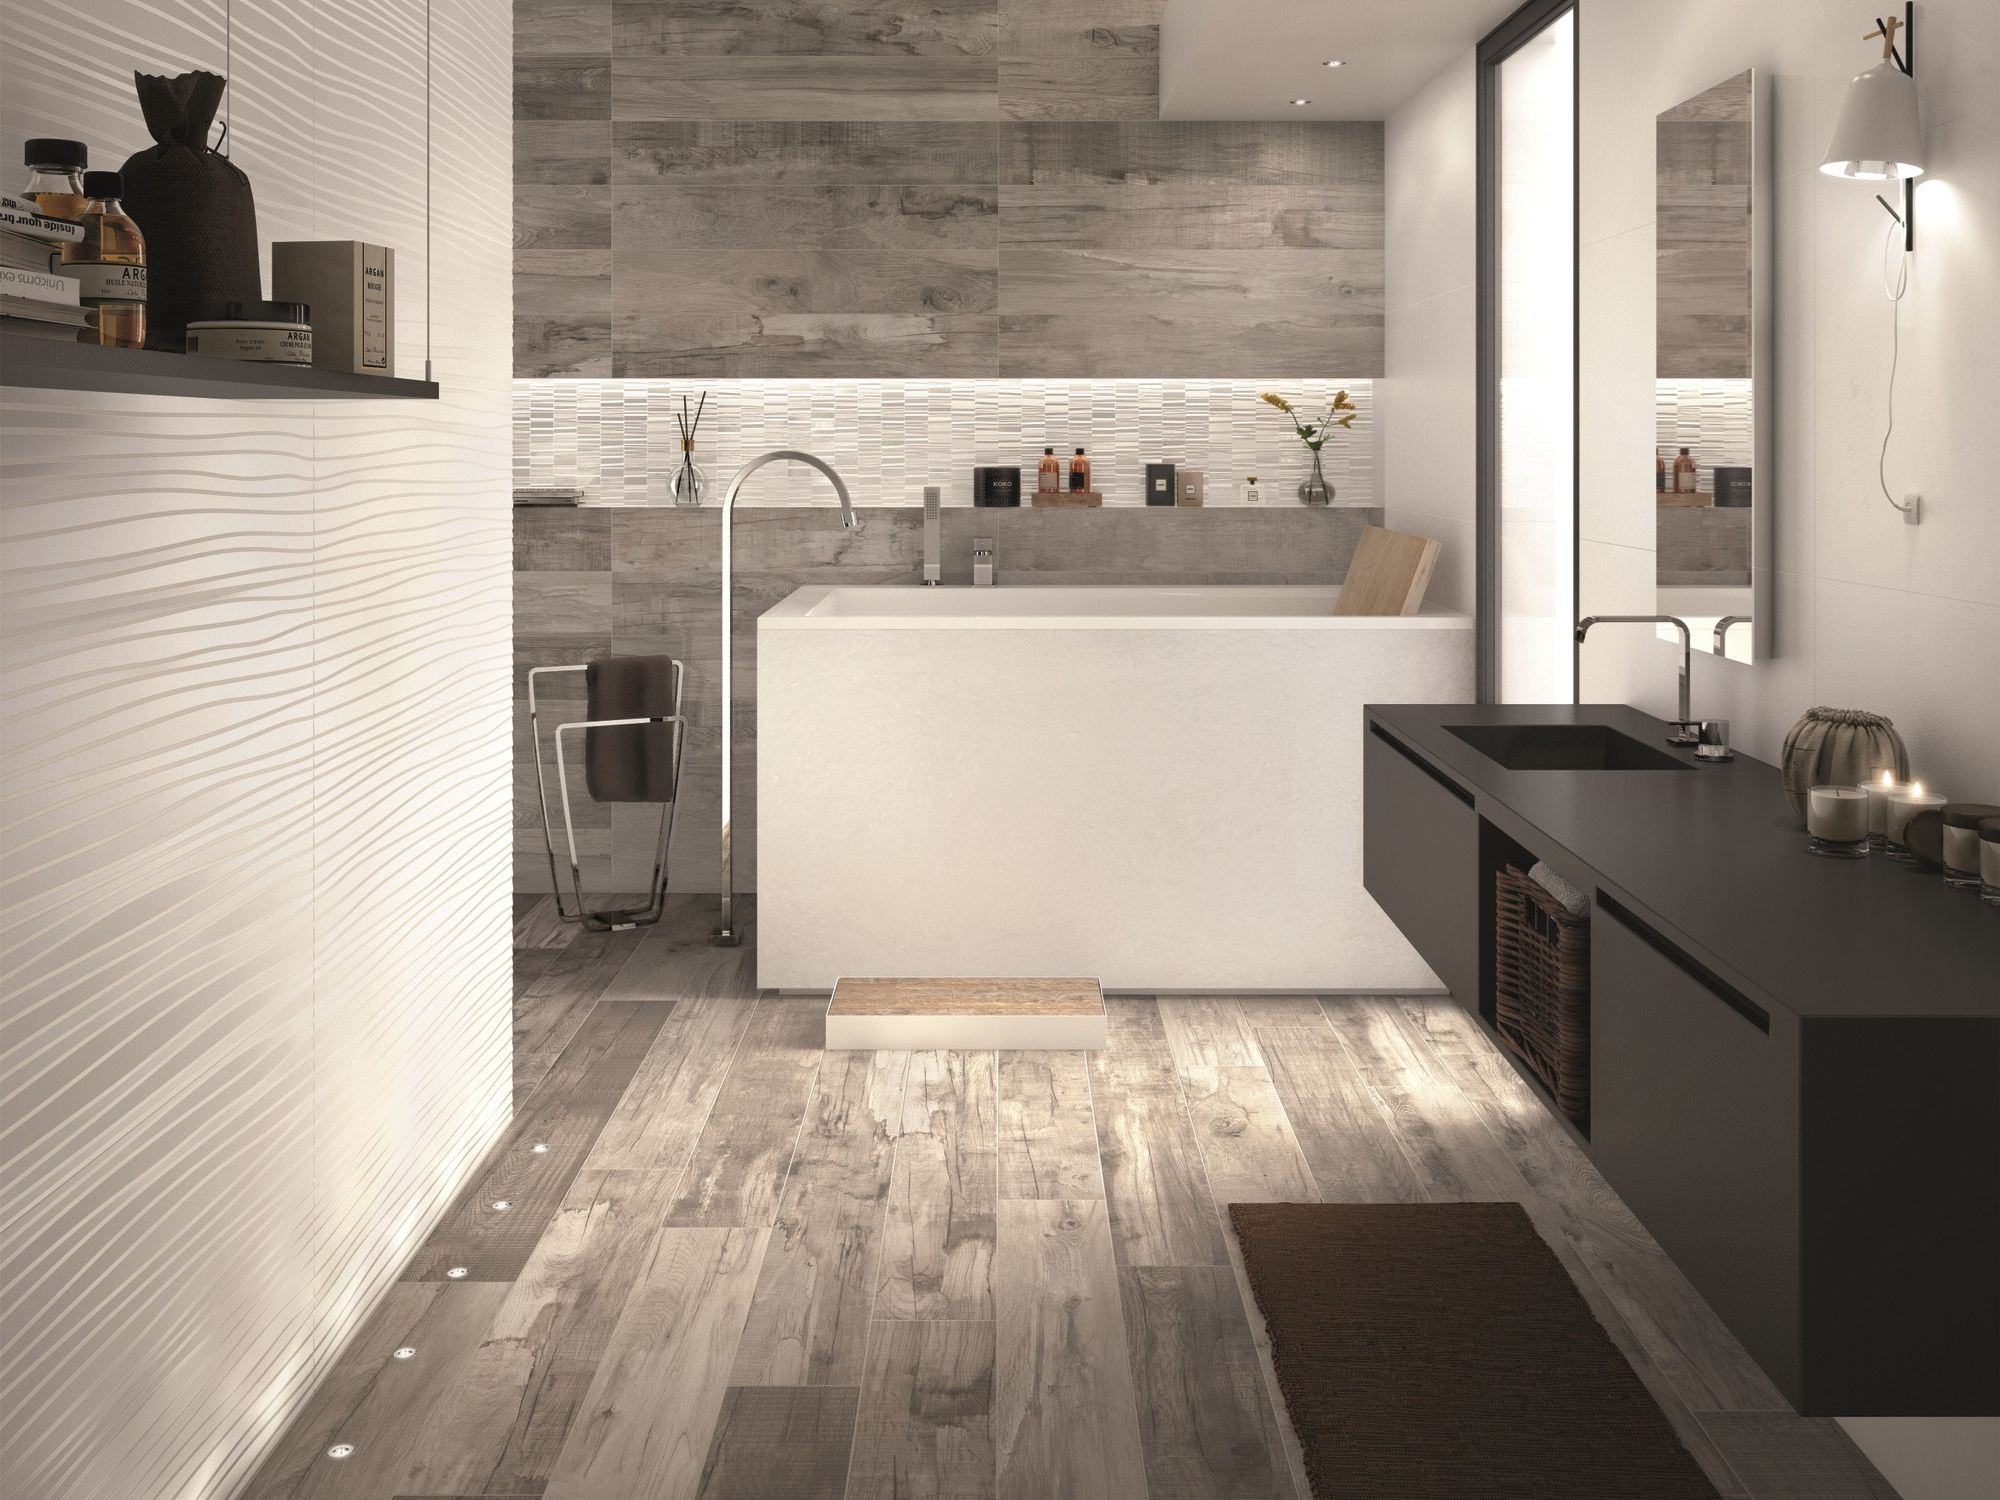 wall porcelain wall tiles do up touch by abk industrie ceramiche. Black Bedroom Furniture Sets. Home Design Ideas